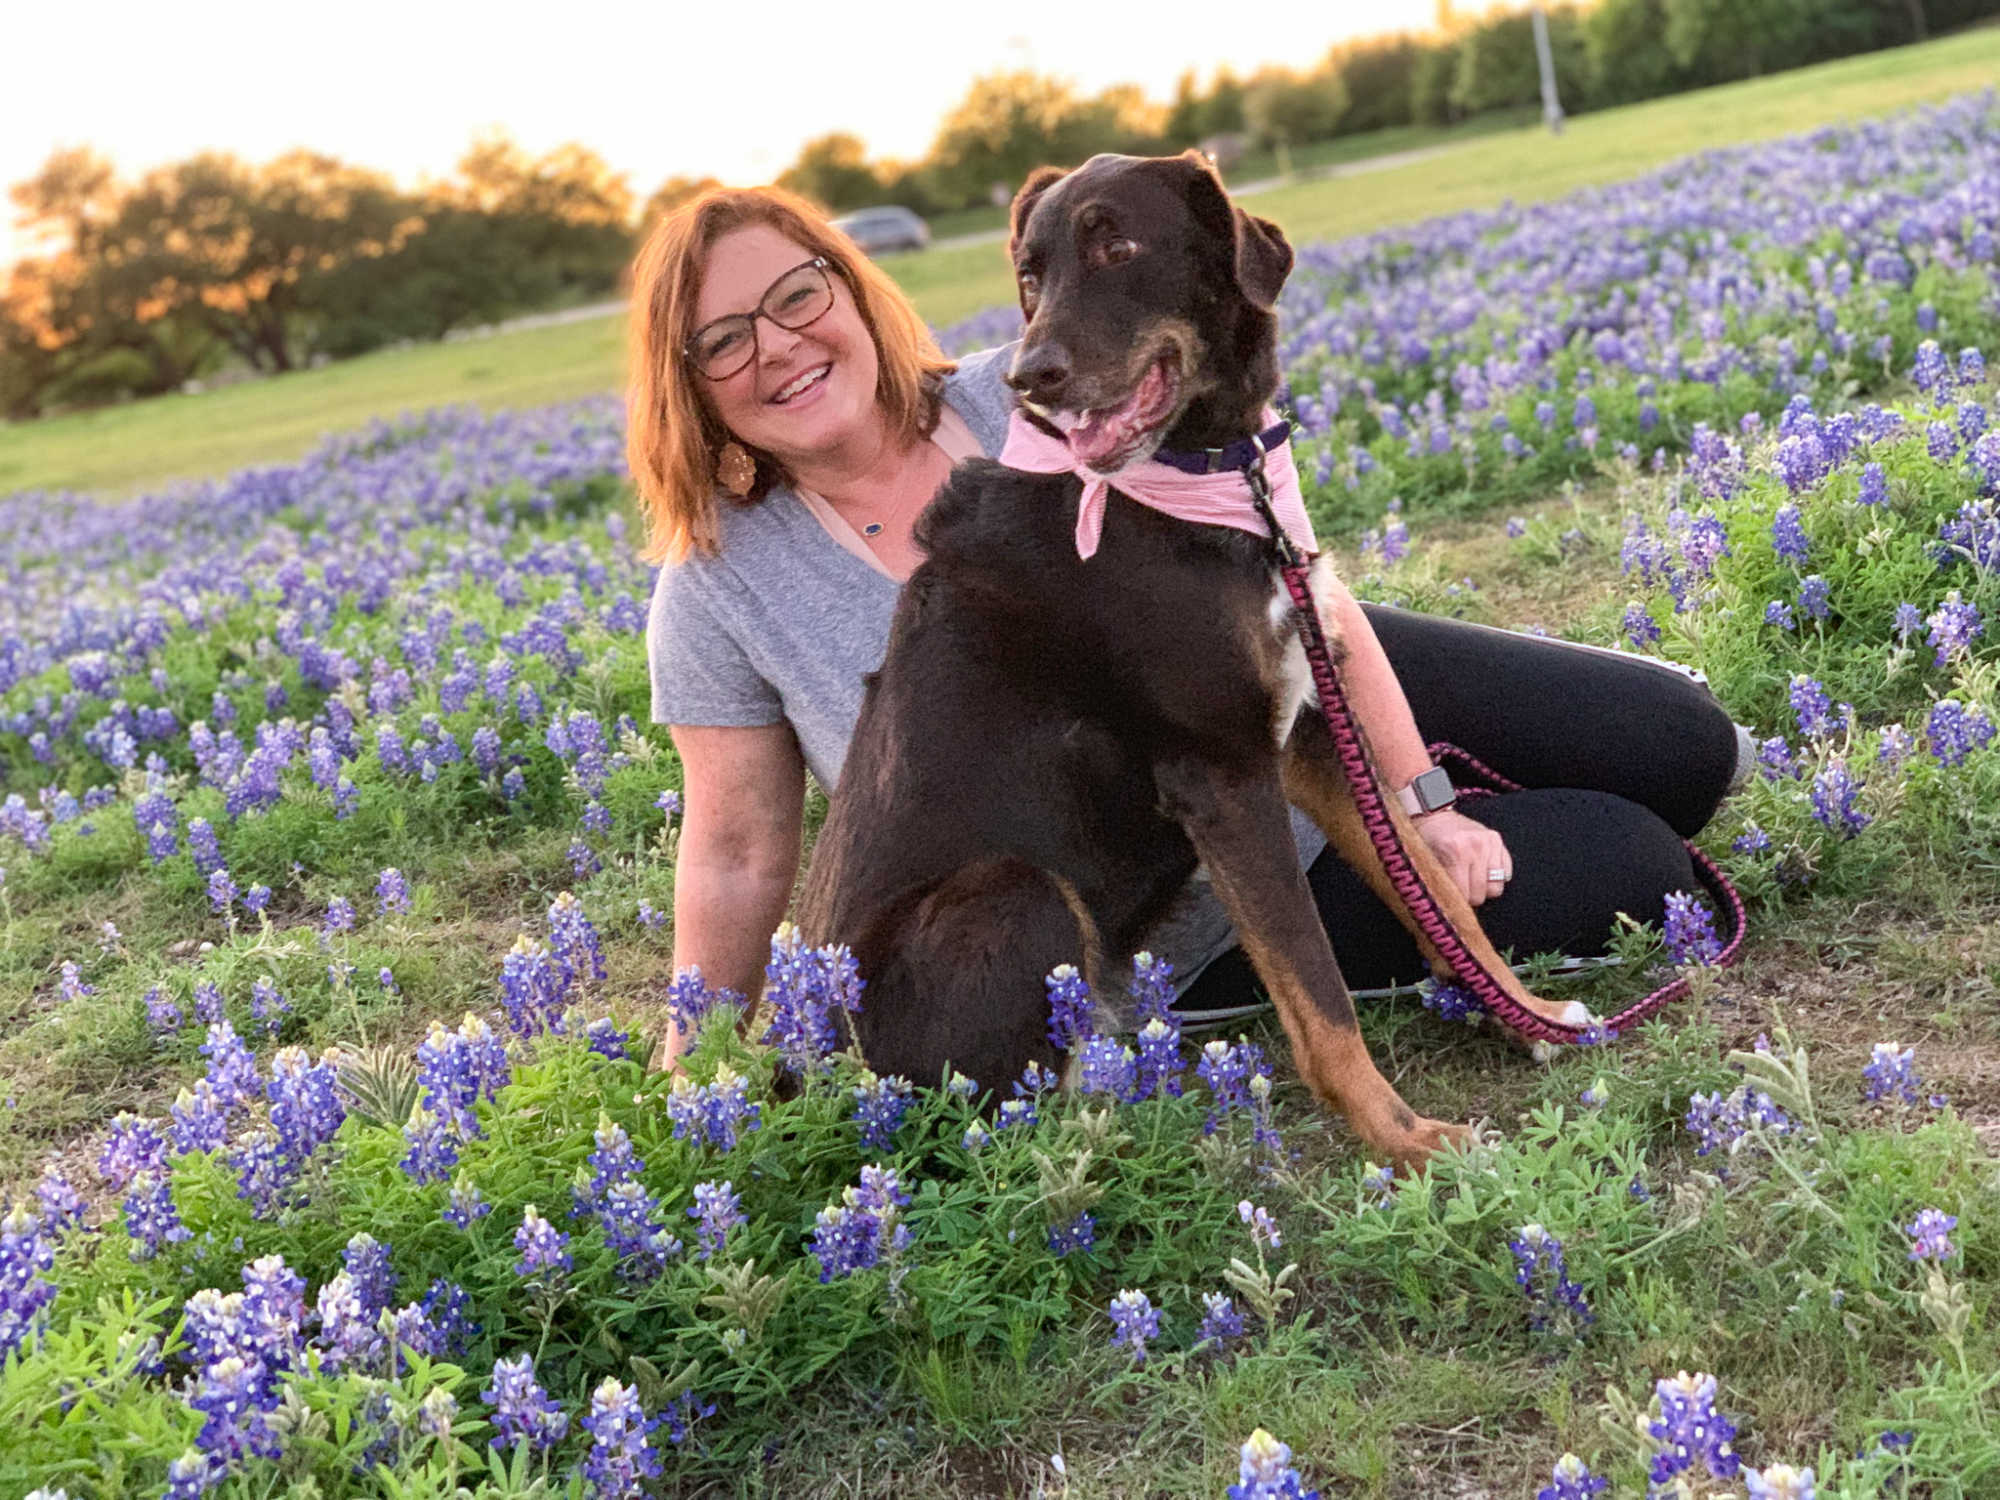 Me and my girl, Lilly, in the Texas bluebonnets